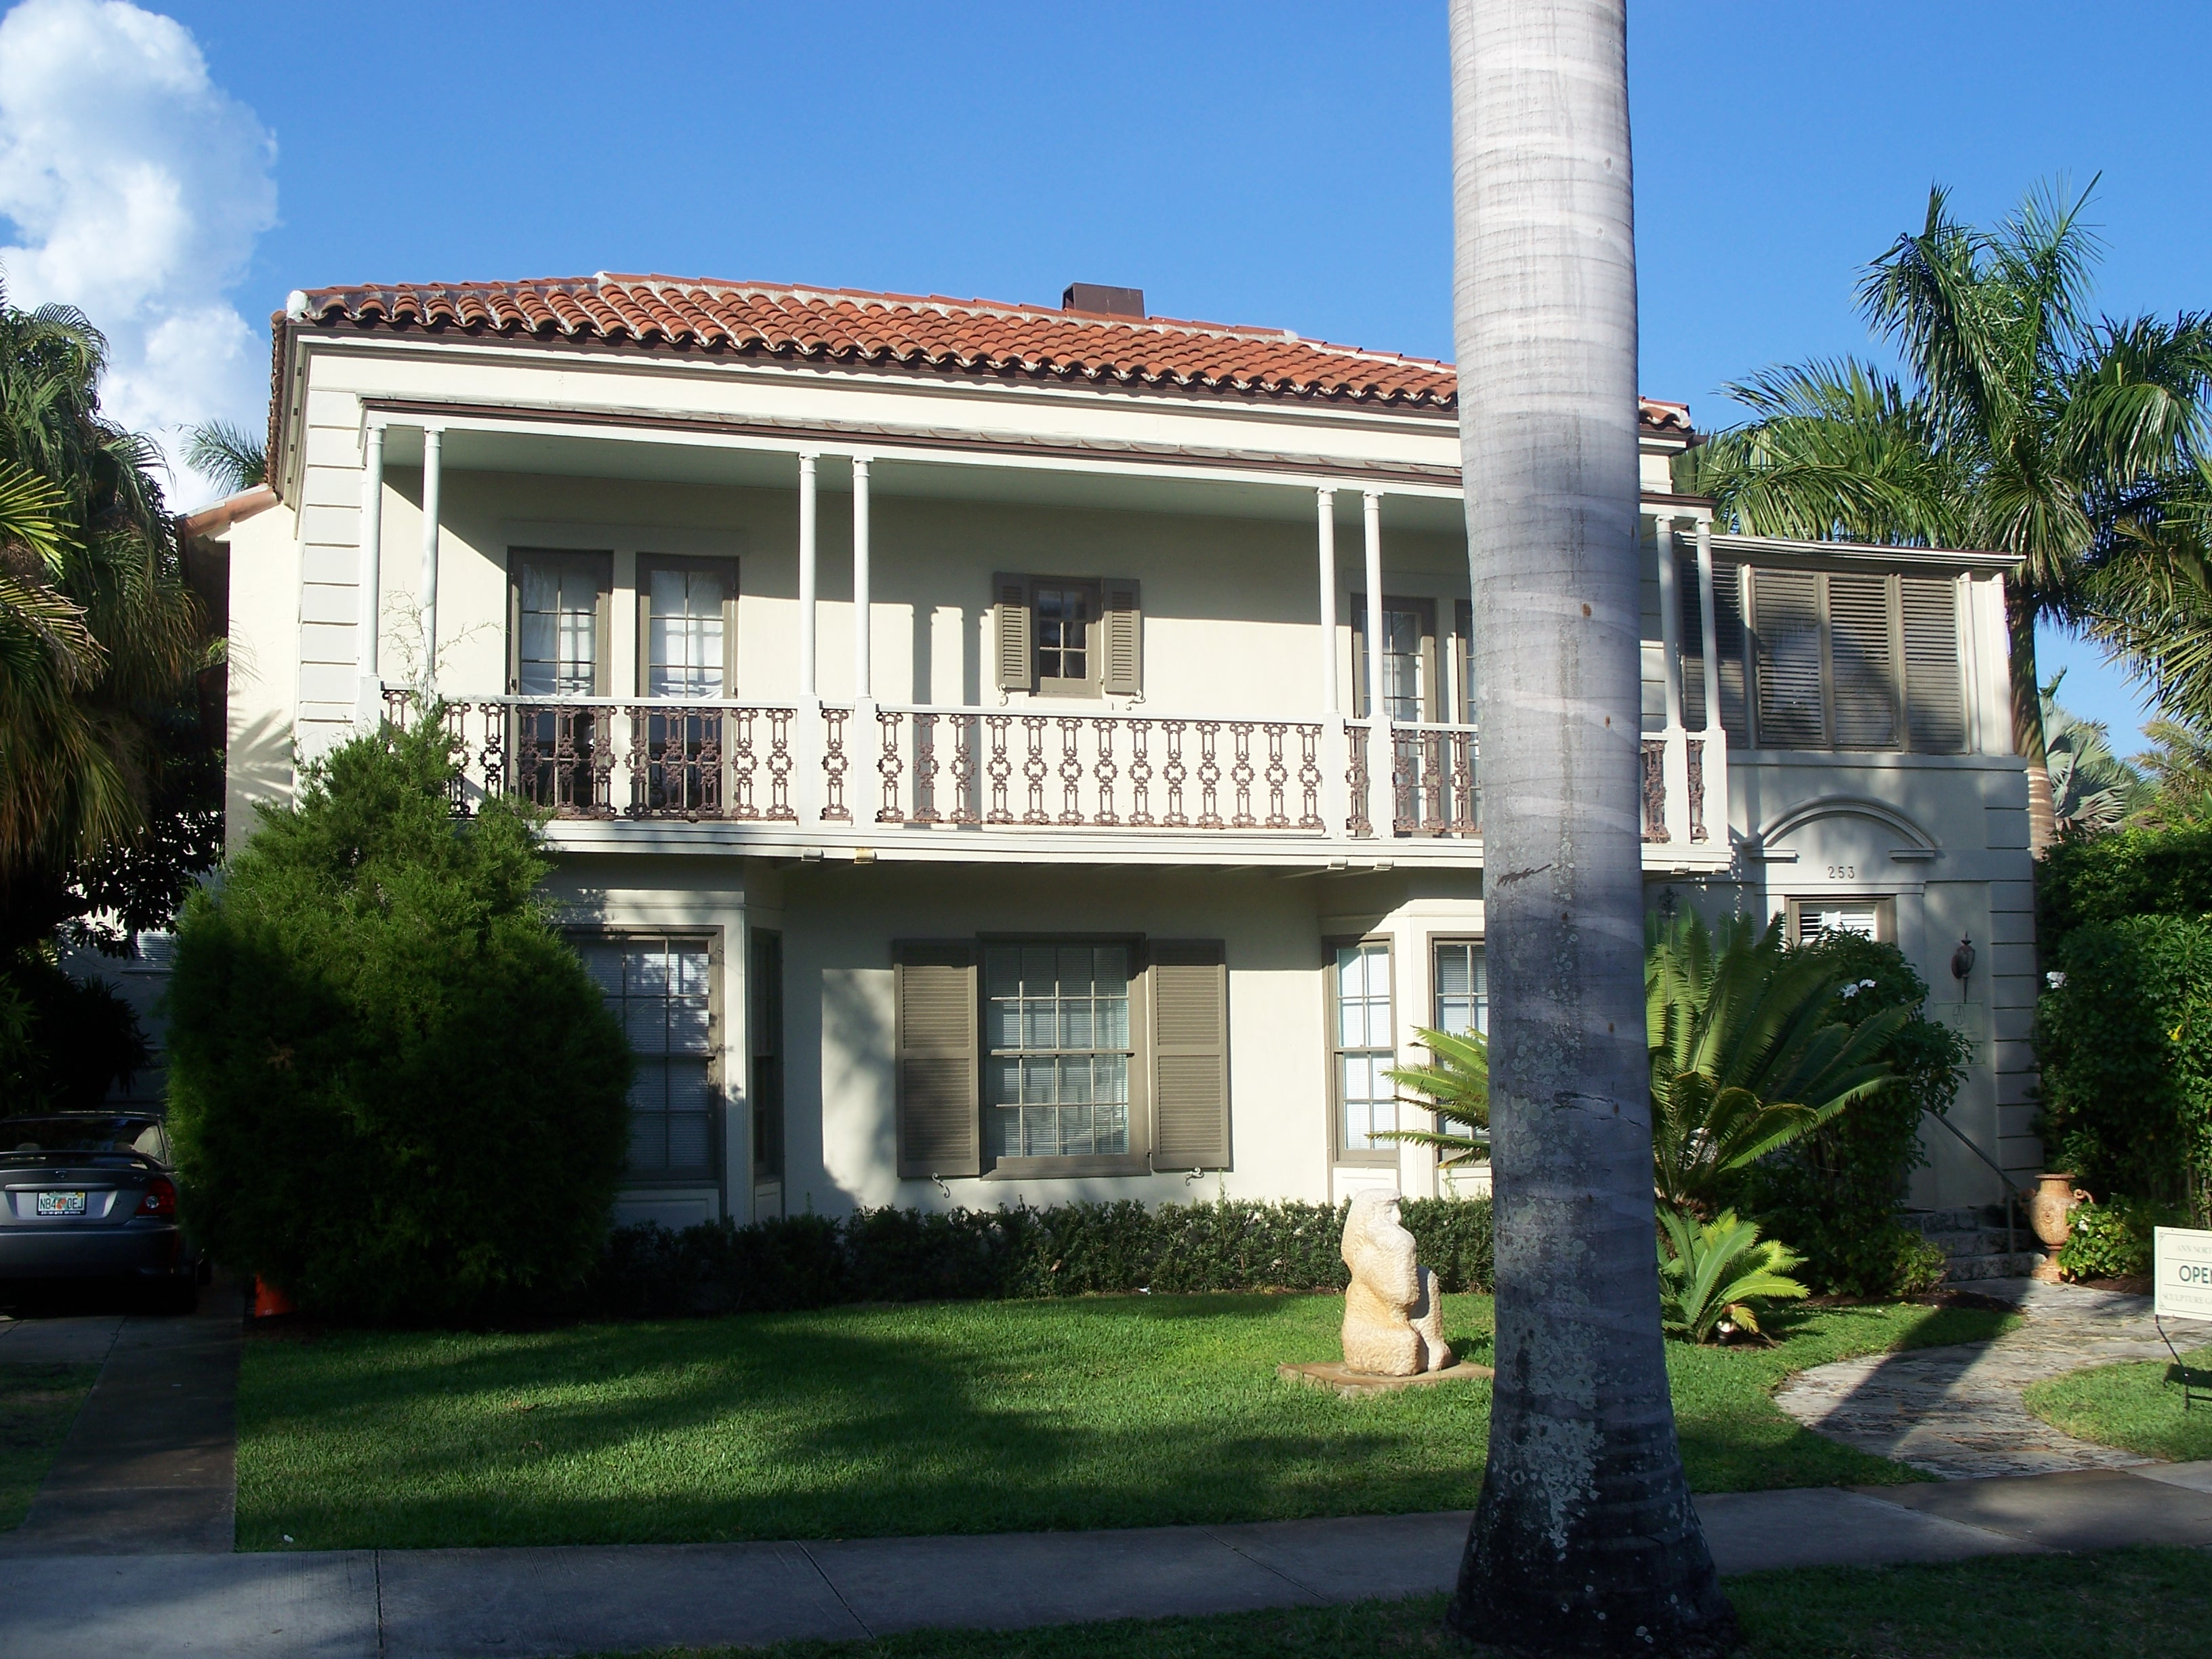 buildings and structures in west palm beach florida